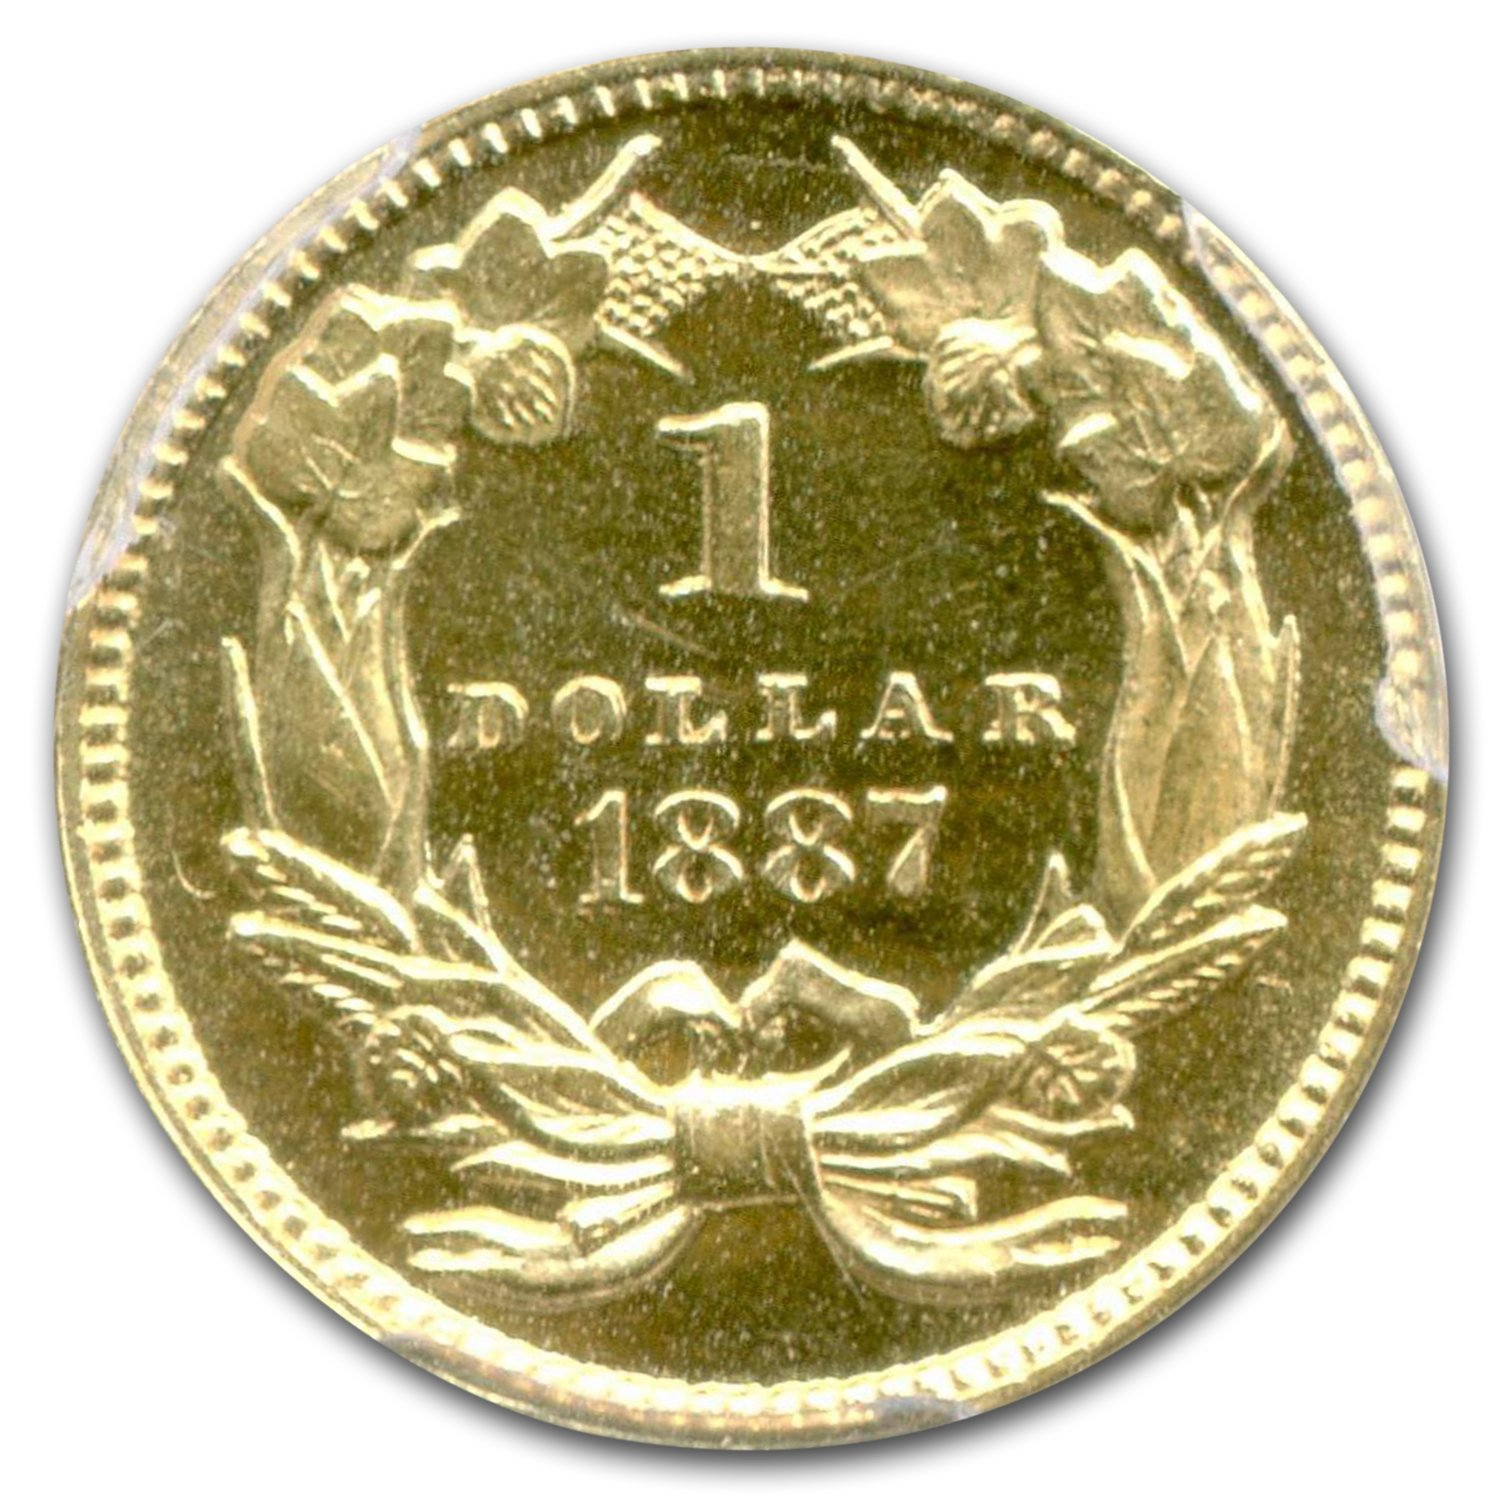 1887 $1 Indian Head Gold PR-64 PCGS